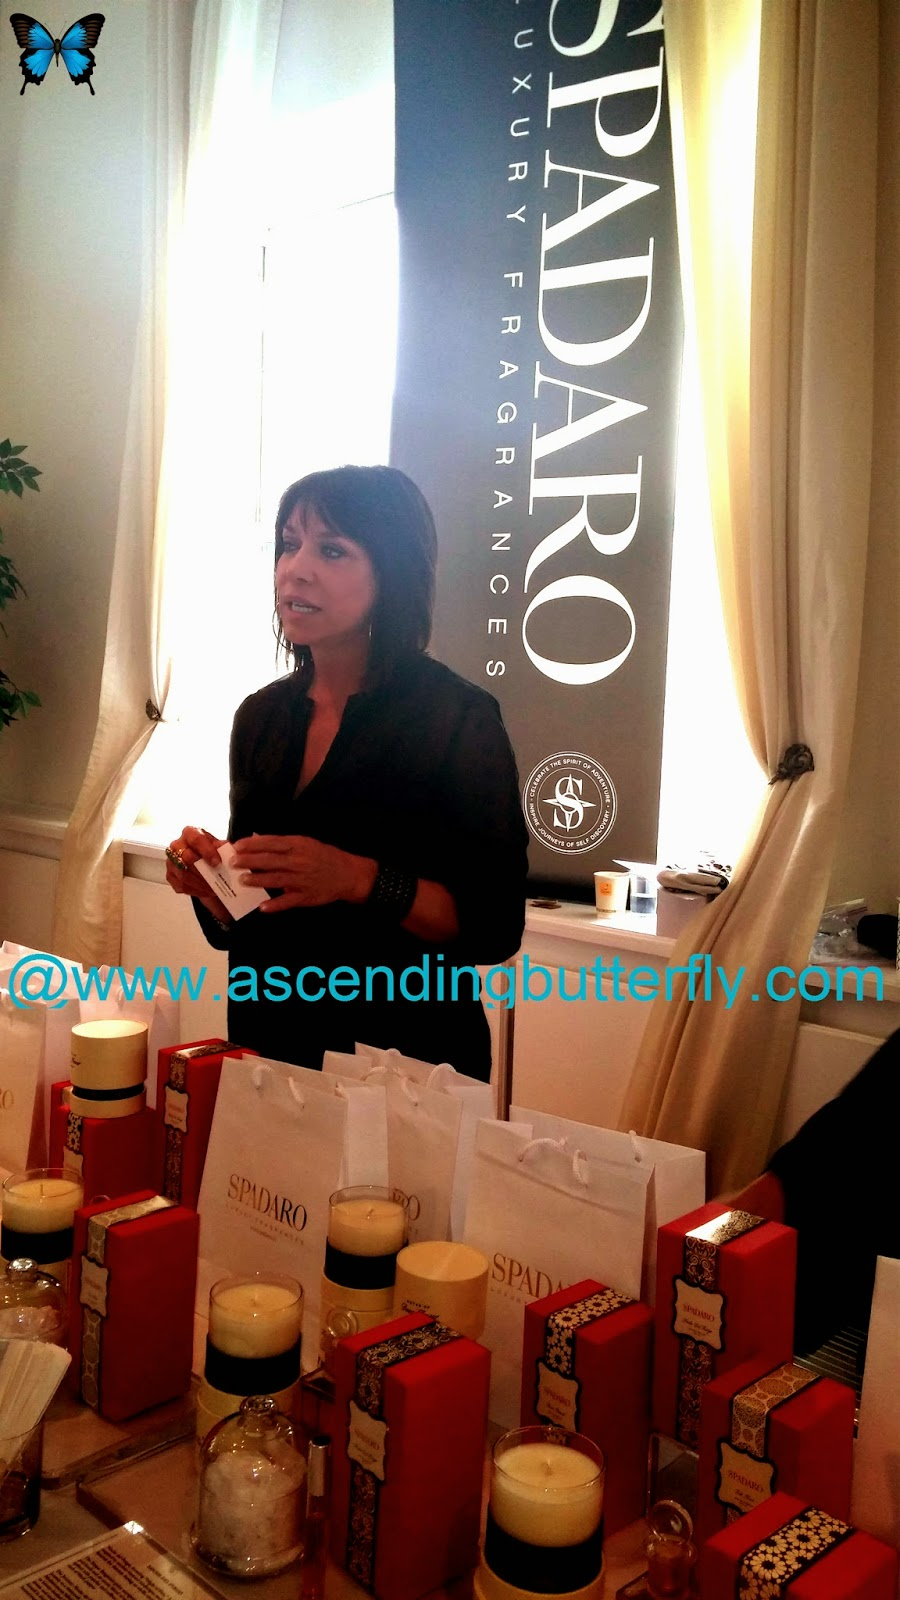 Spadaro Luxury Fragrances BeautyPress Spotlight Day February 2014